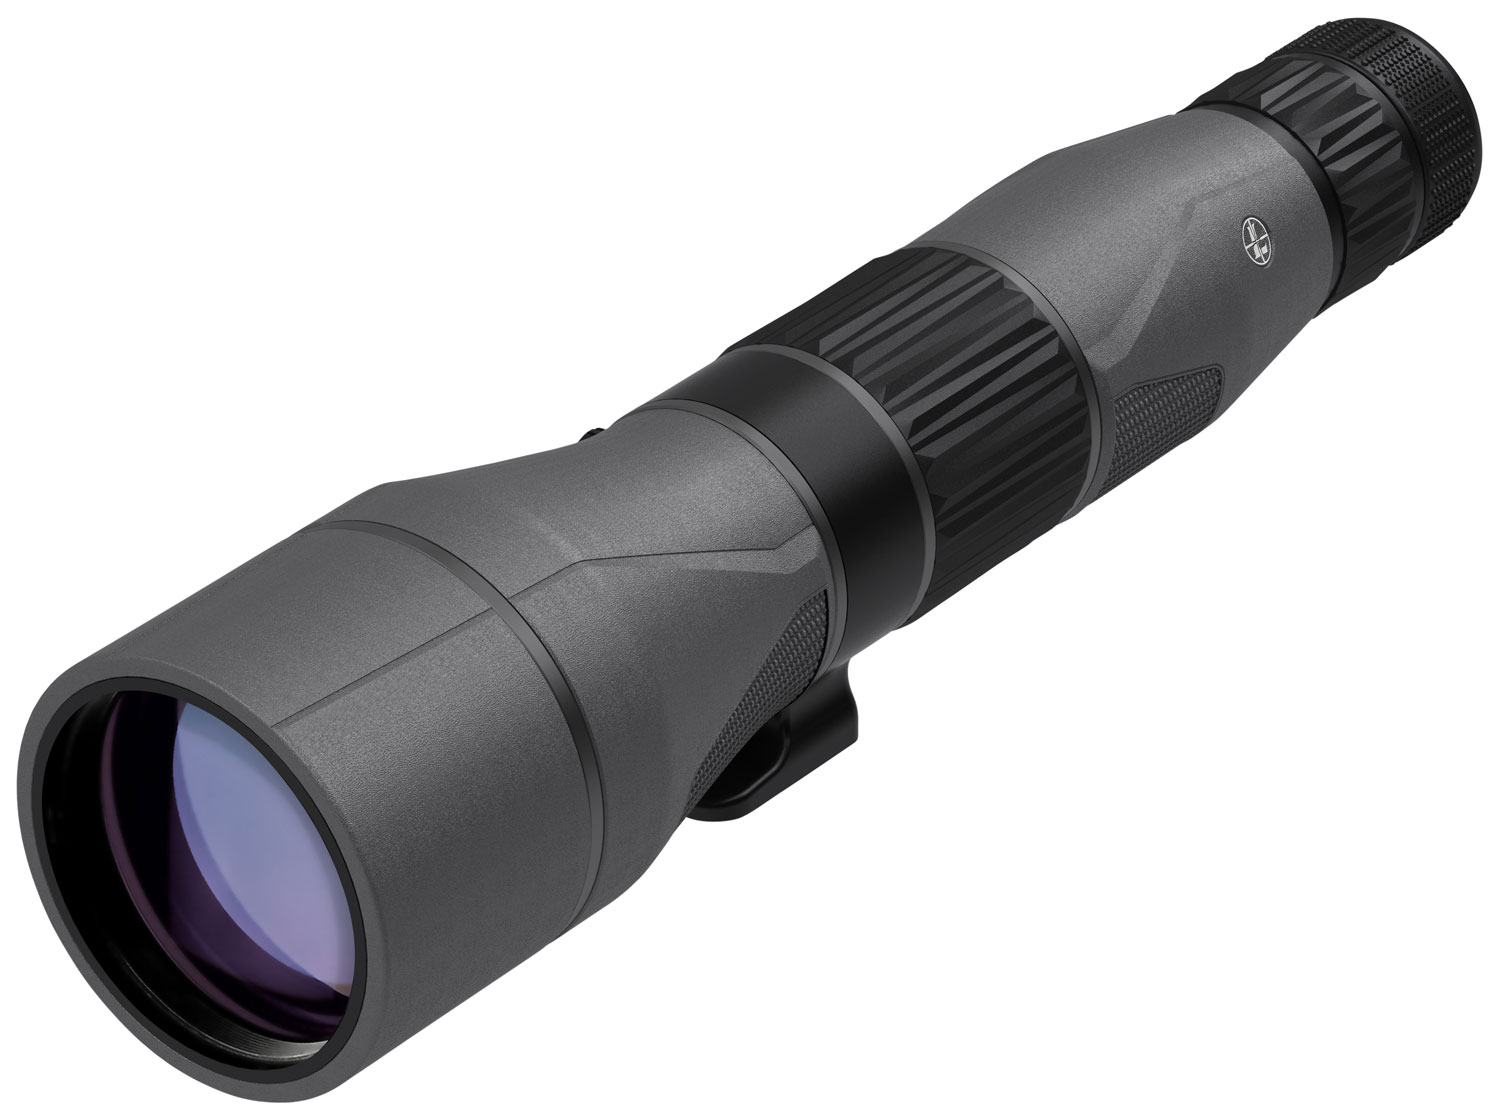 Leupold 175912 SX-5 Santiam HD  27-55x 80mm 105-73 ft @ 1000 yds FOV 19.2-16.6mm Straight Shadow Gray